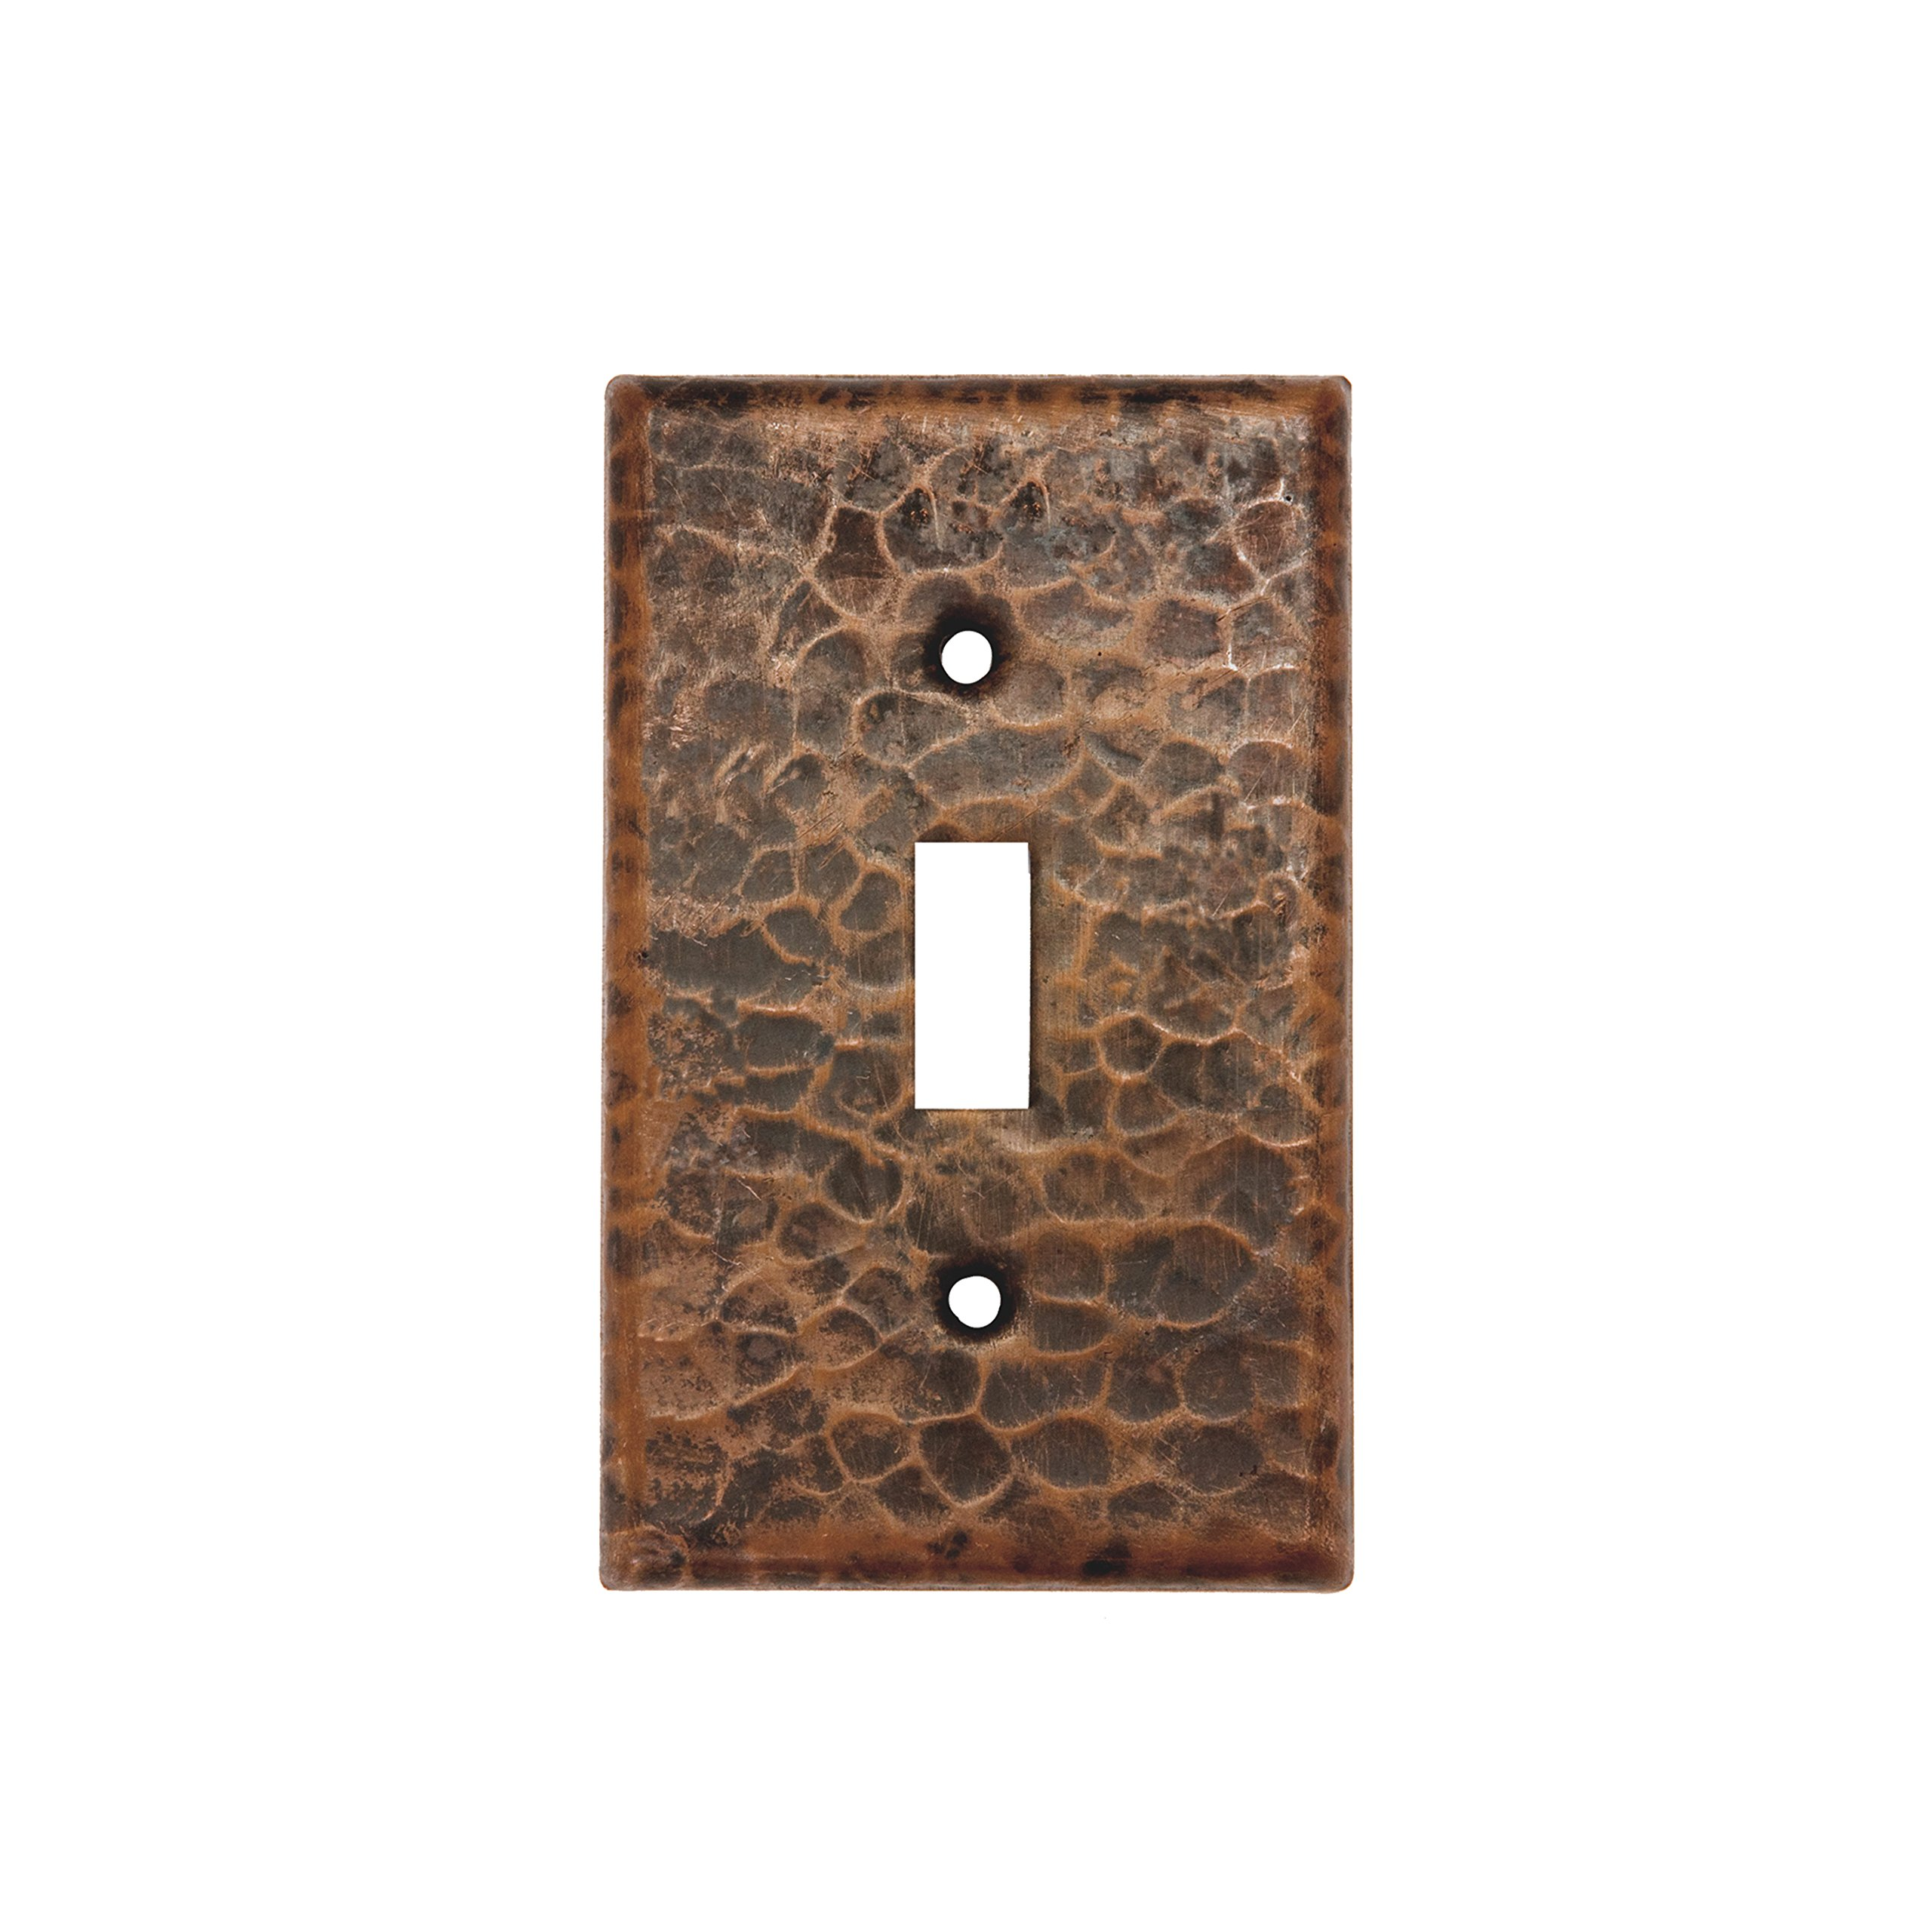 Premier Copper Products ST1 Copper Switch Plate Single Toggle Switch Cover, Oil Rubbed Bronze